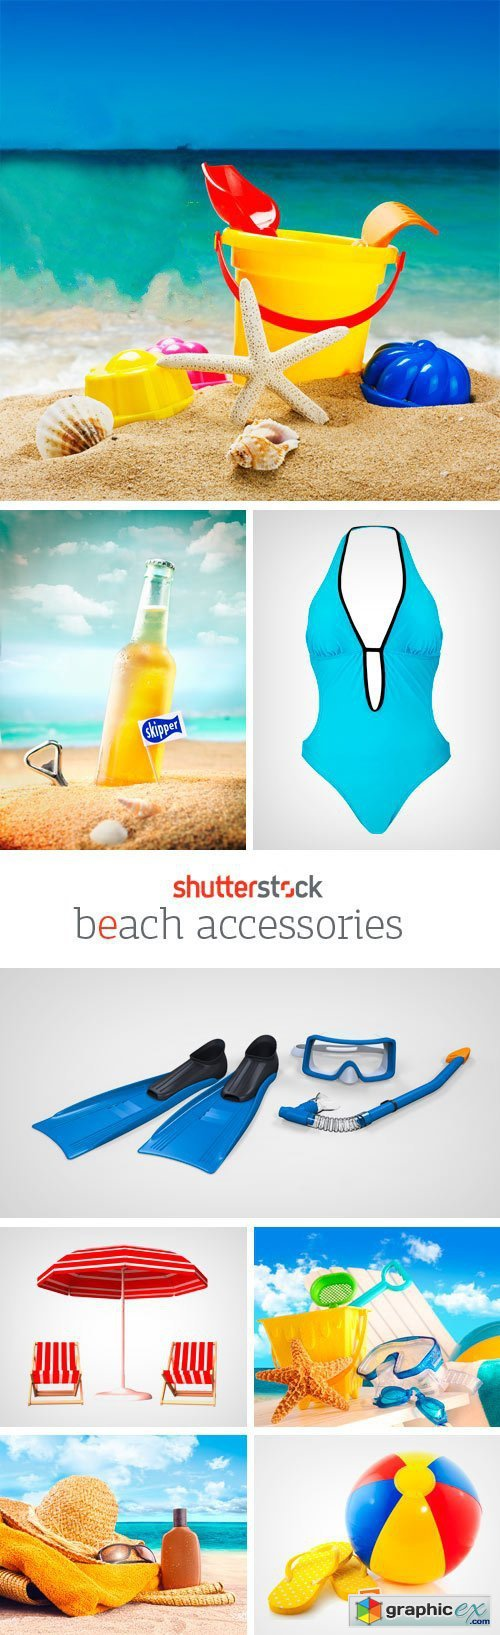 Amazing SS - Beach Accessories, 25xJPGs